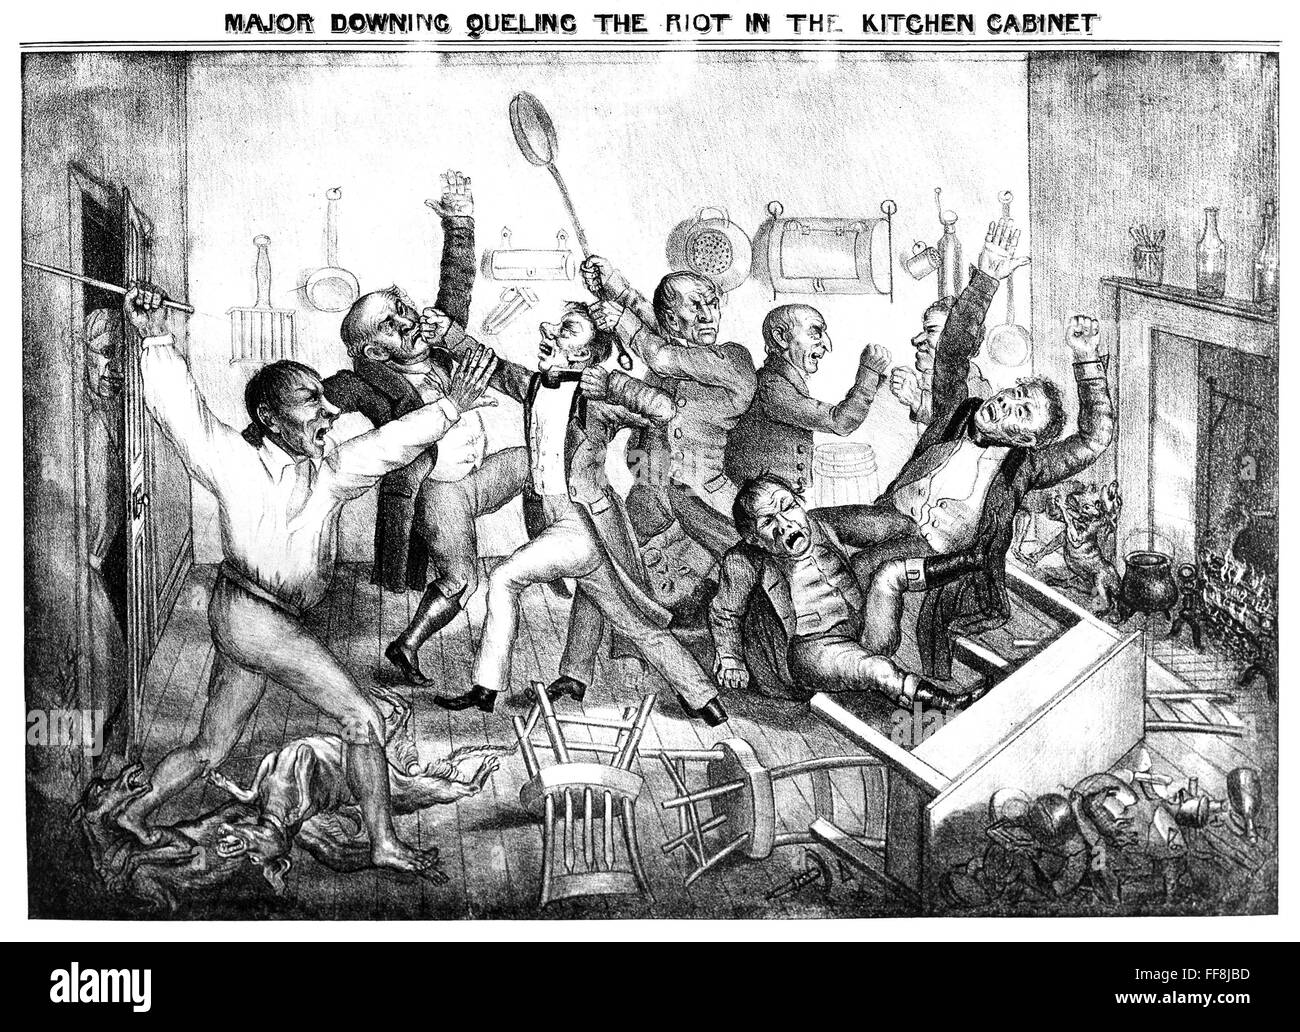 ANDREW JACKSON CARTOON. /n'Major Downing Queling the riot